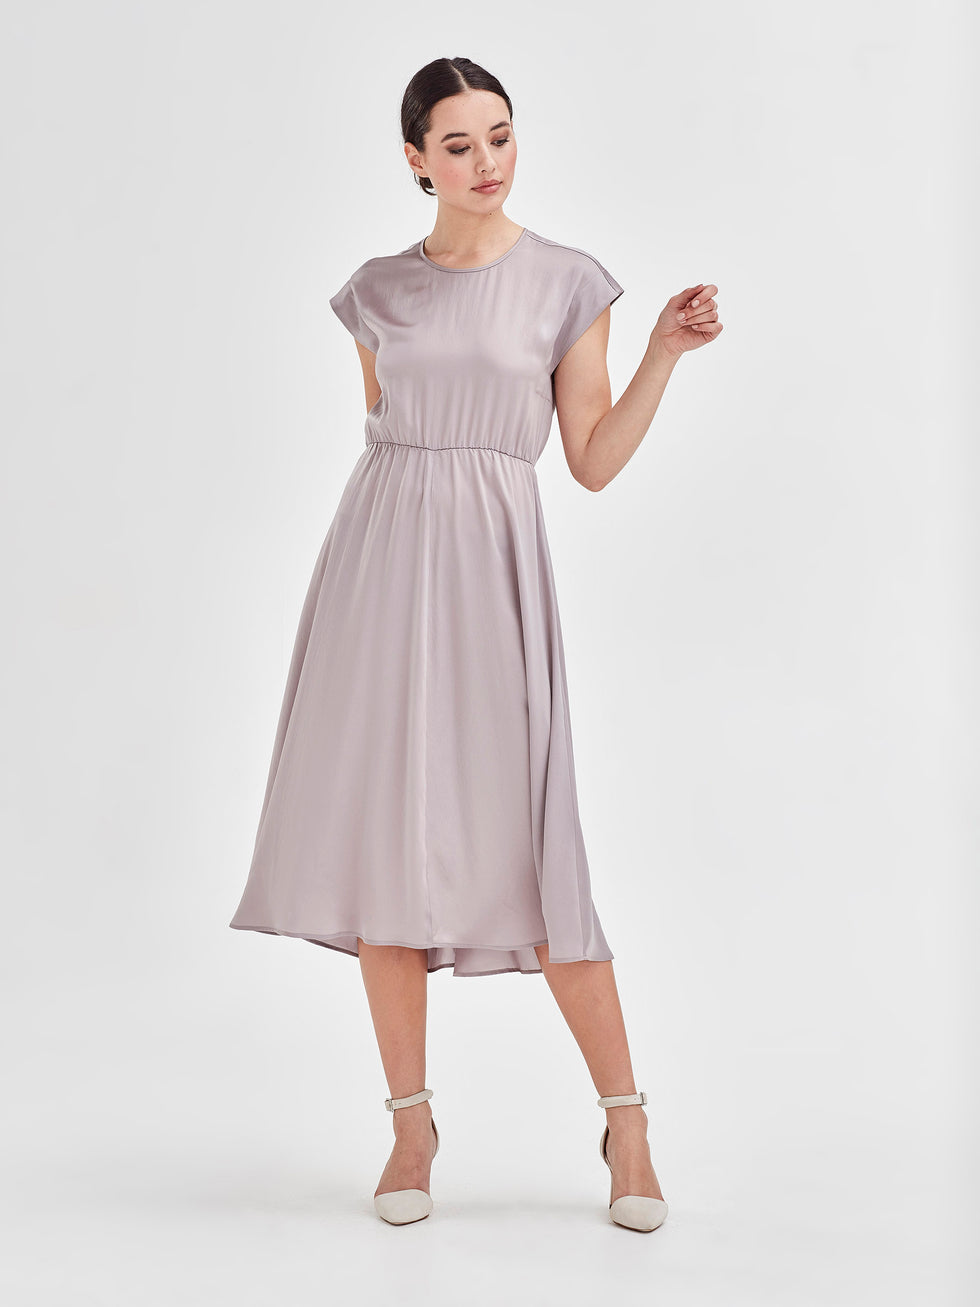 Ella Dress (Satin Triacetate) Wine 1